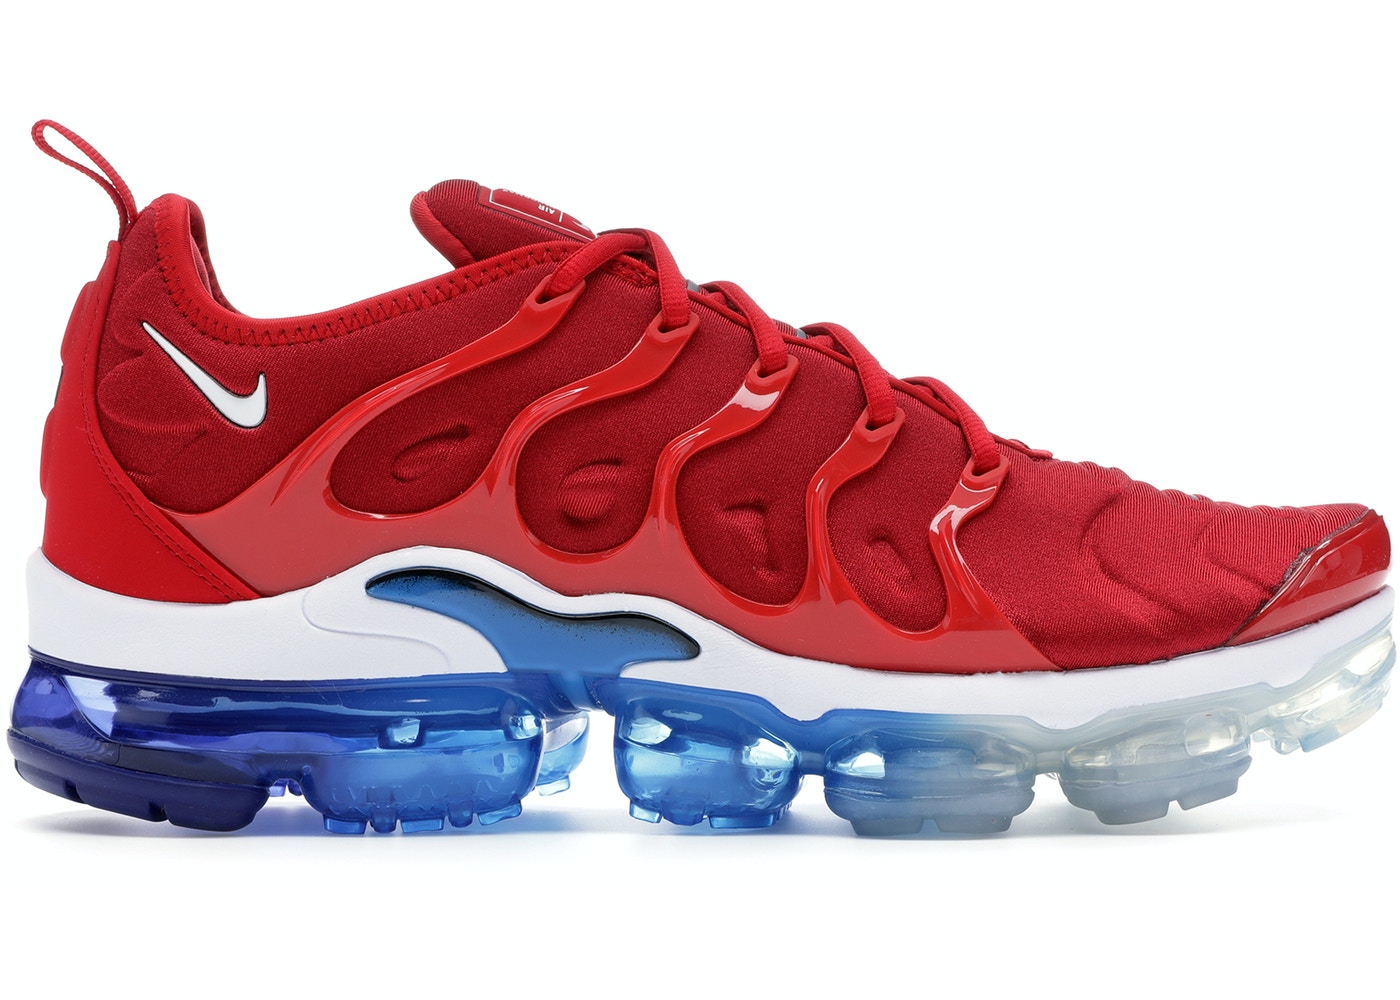 outlet store 3beb1 c0e6e Buy Nike Air Max VaporMax Shoes   Deadstock Sneakers